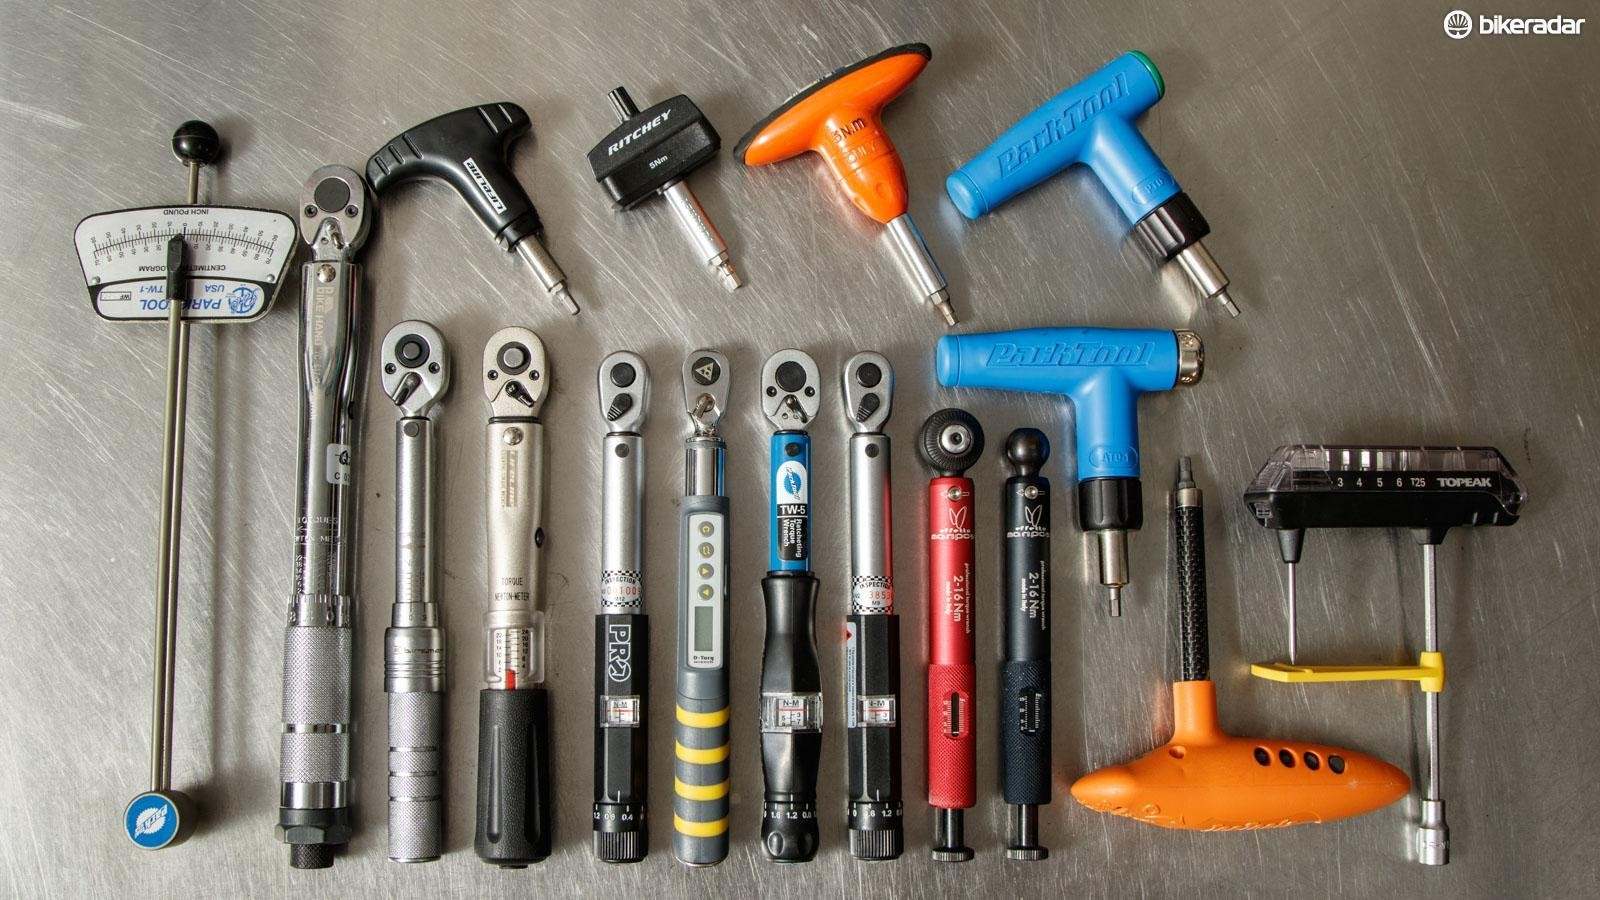 If you don't own a torque wrench and plan on doing your own bike maintenance, buy one. Keep a list of the manufacturer's recommended torque values whenever possible